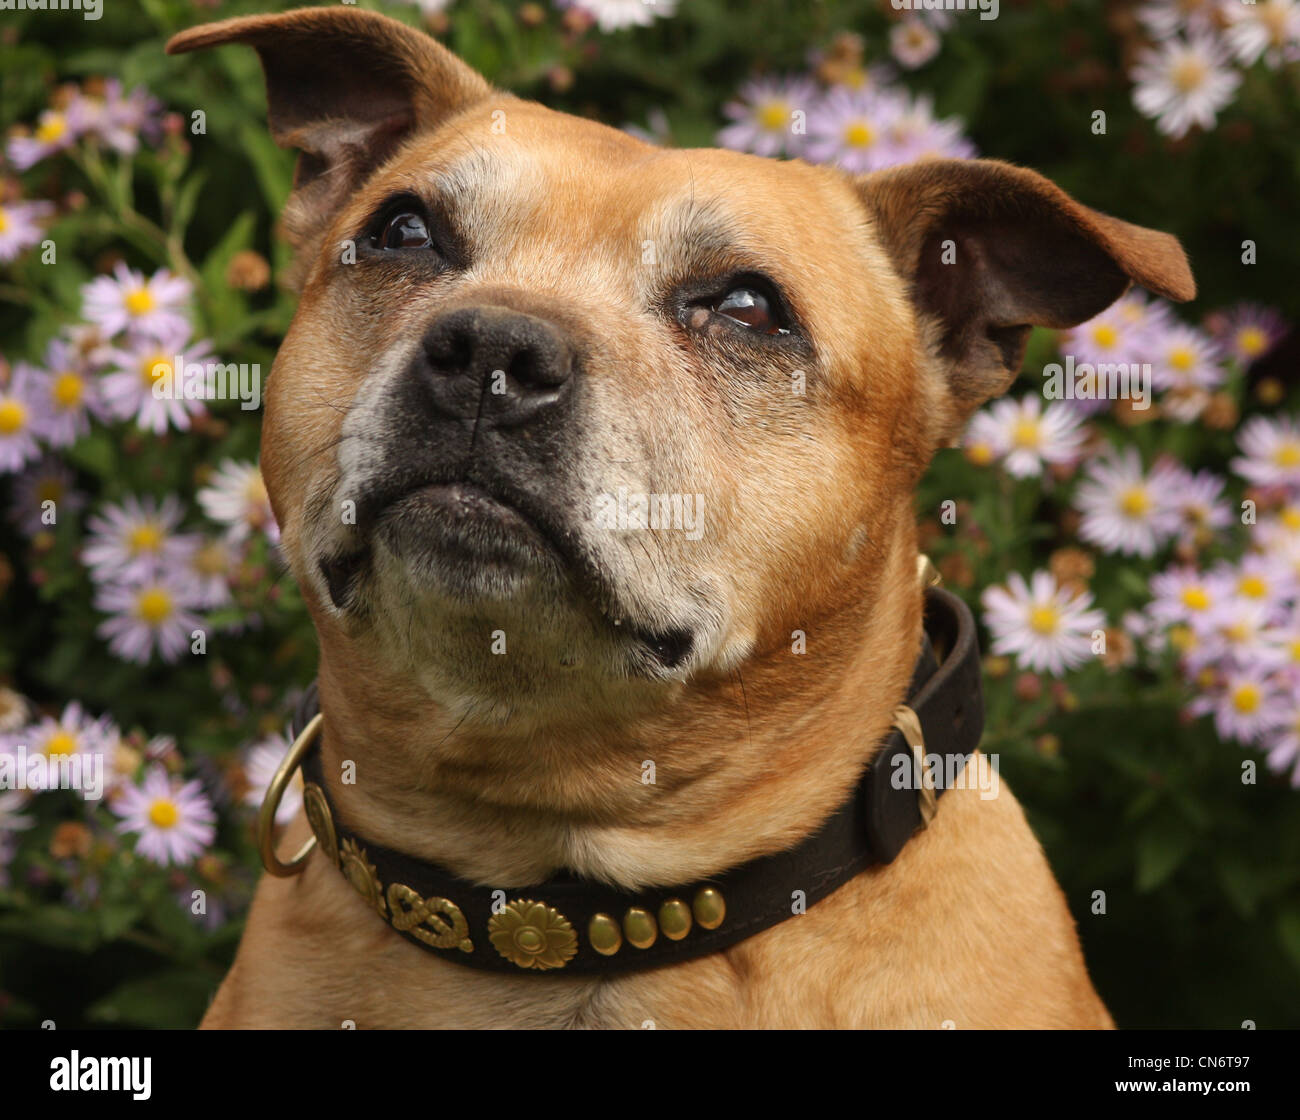 Old Staffordshire bull terrier portrait shot with flowers in background - Stock Image